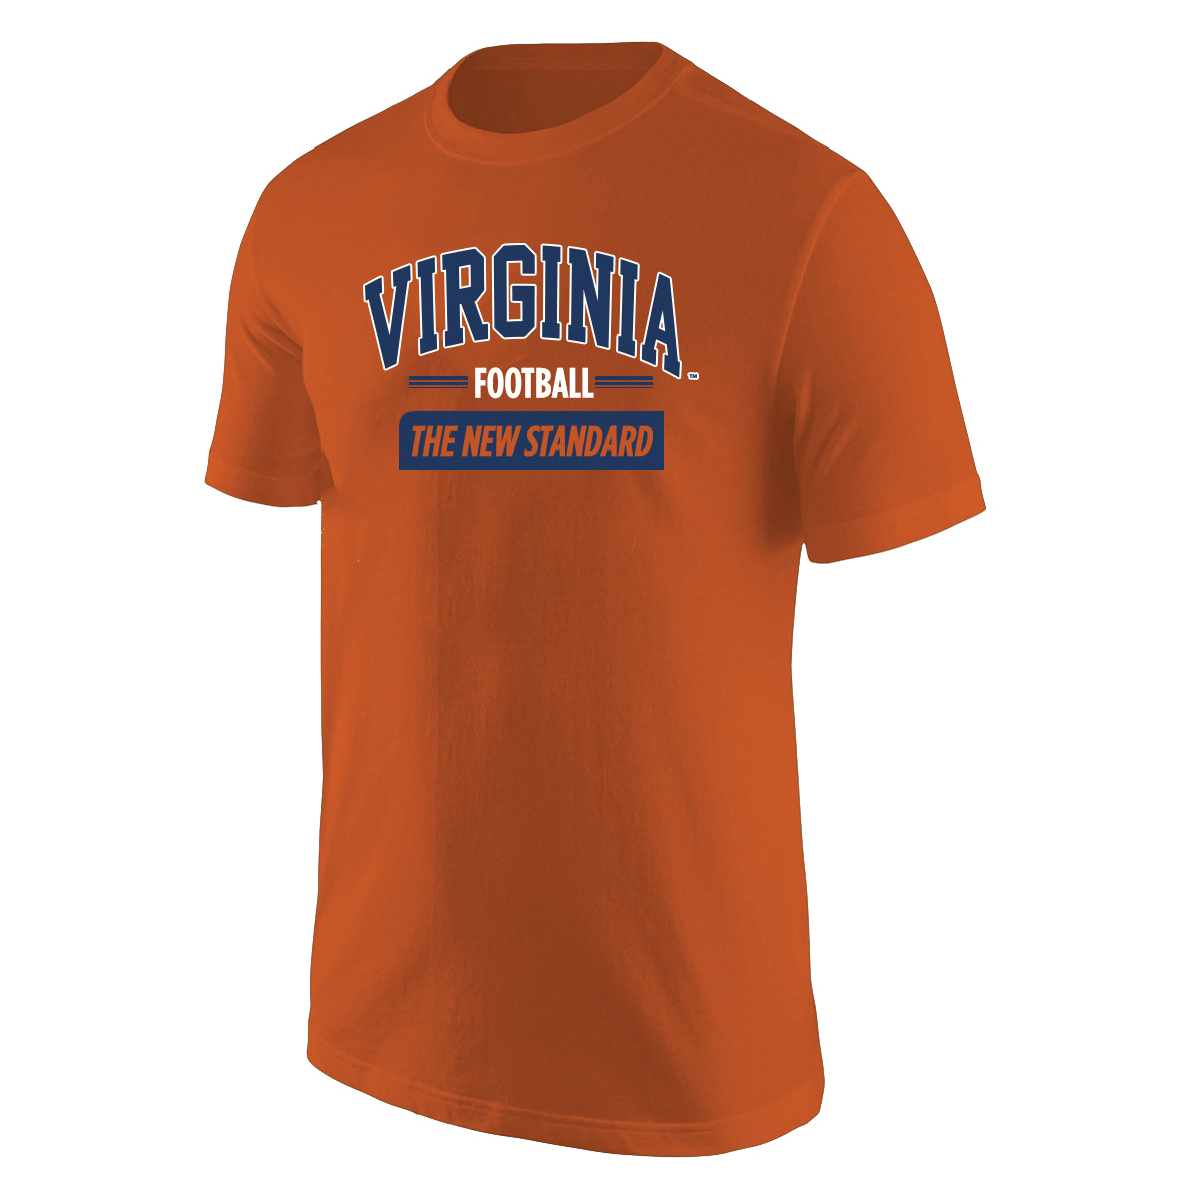 University of Virginia Football The New Standard Arch T-shirt